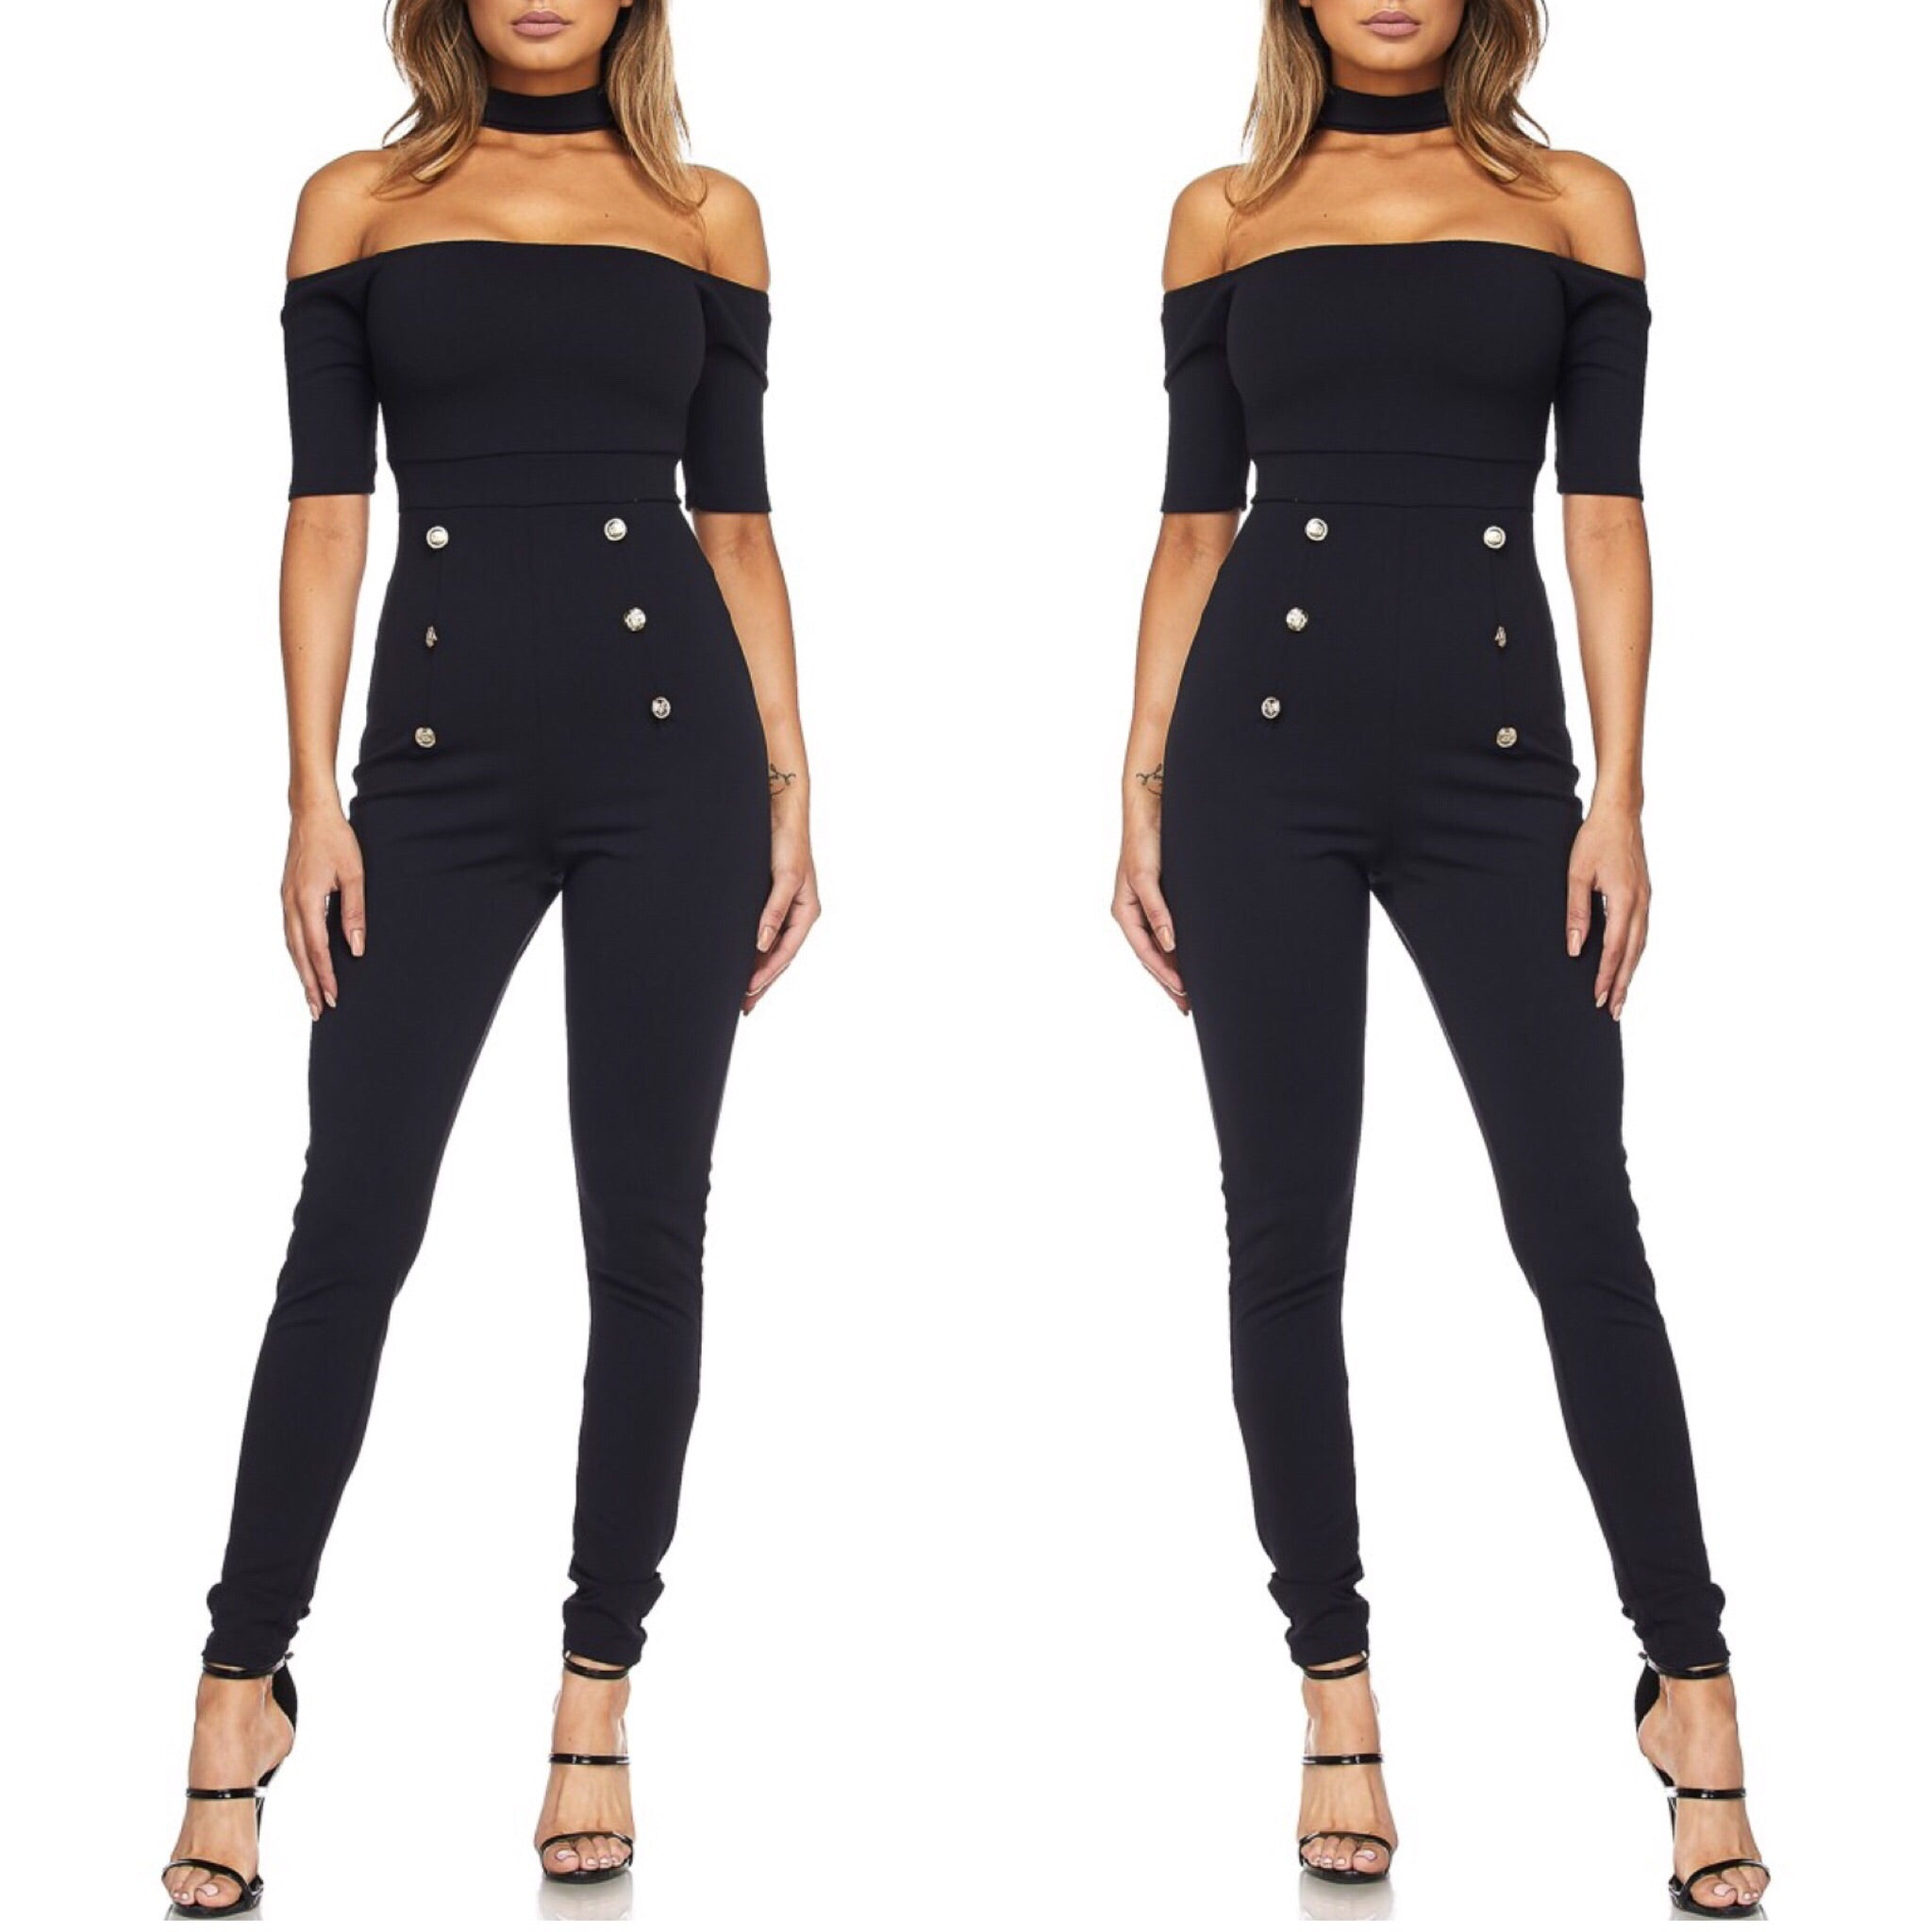 Fierce Off The Shoulder Jumpsuit - Black (S&M)